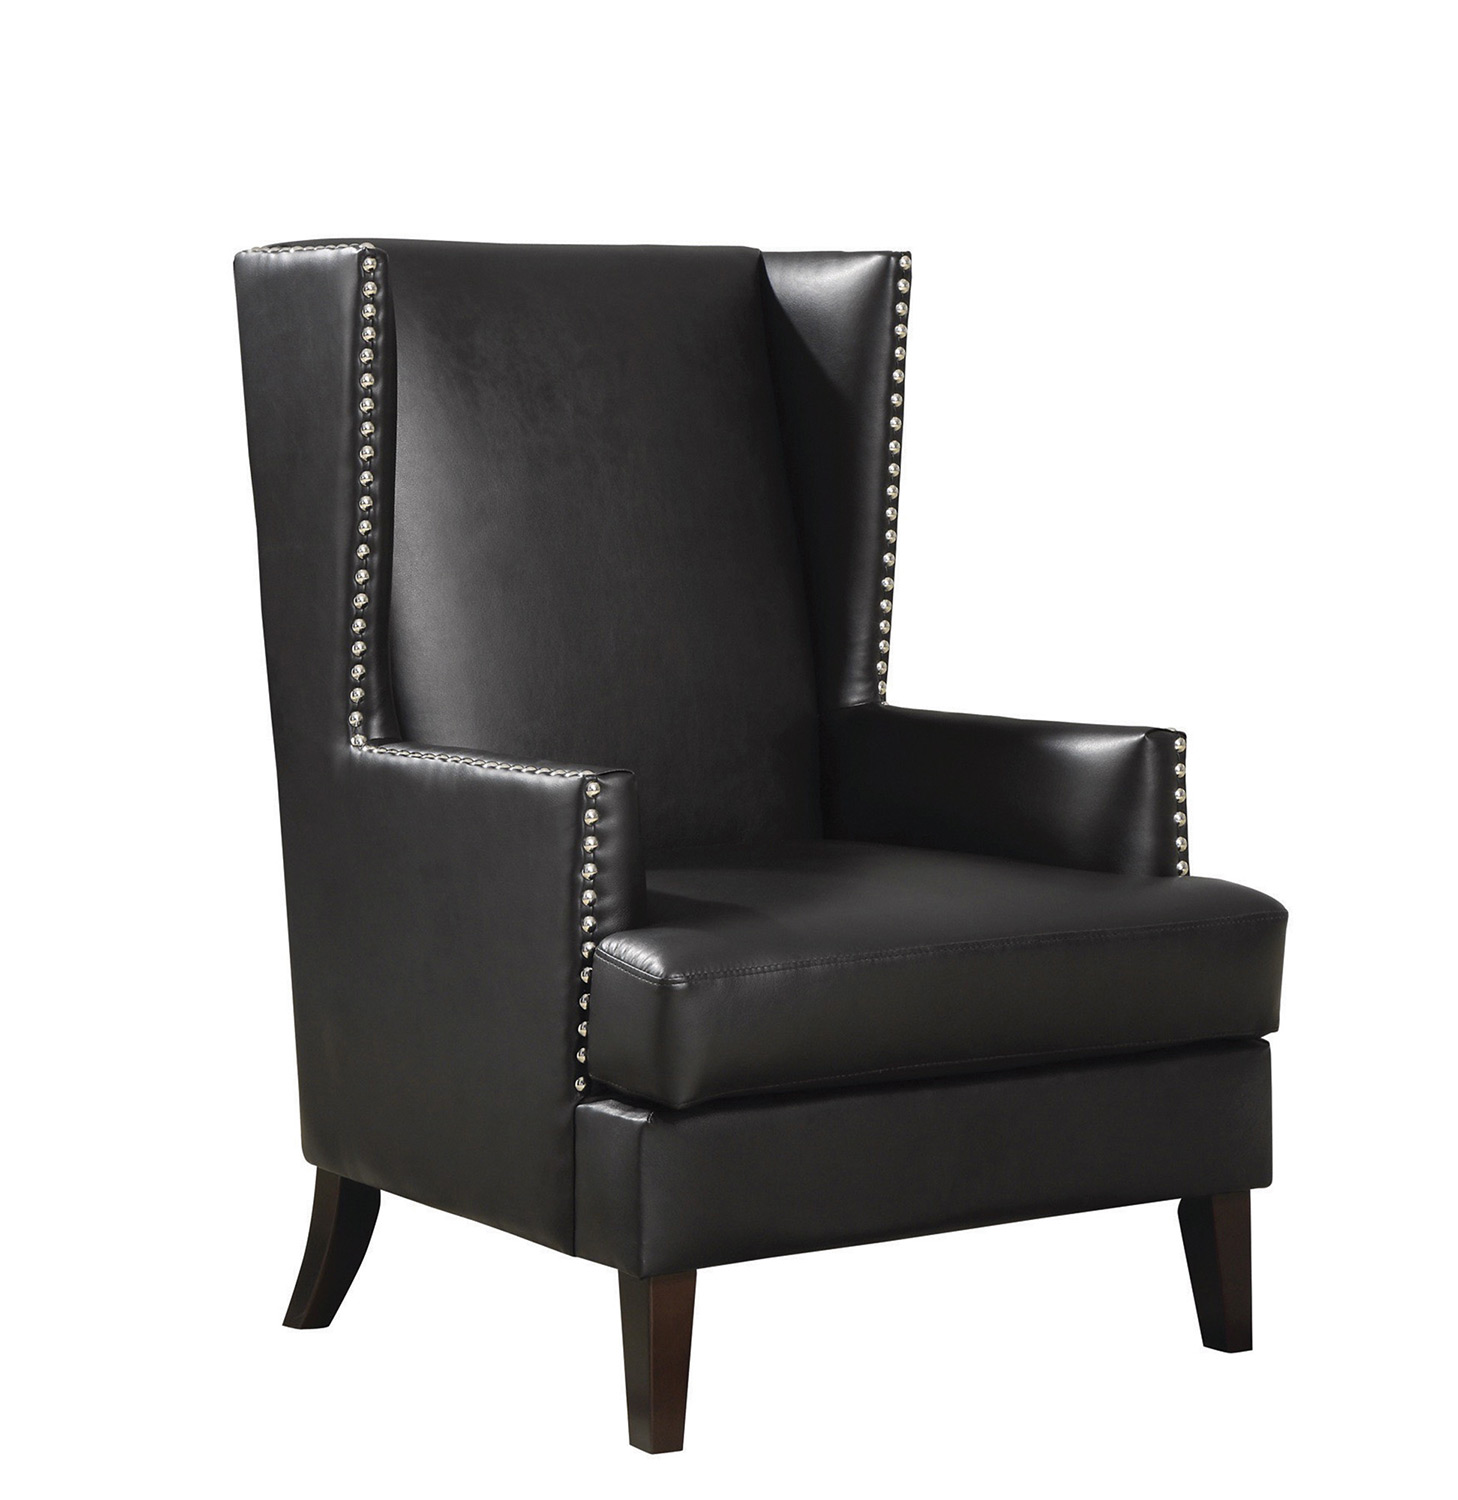 Coaster 902078 Accent Chair - Black